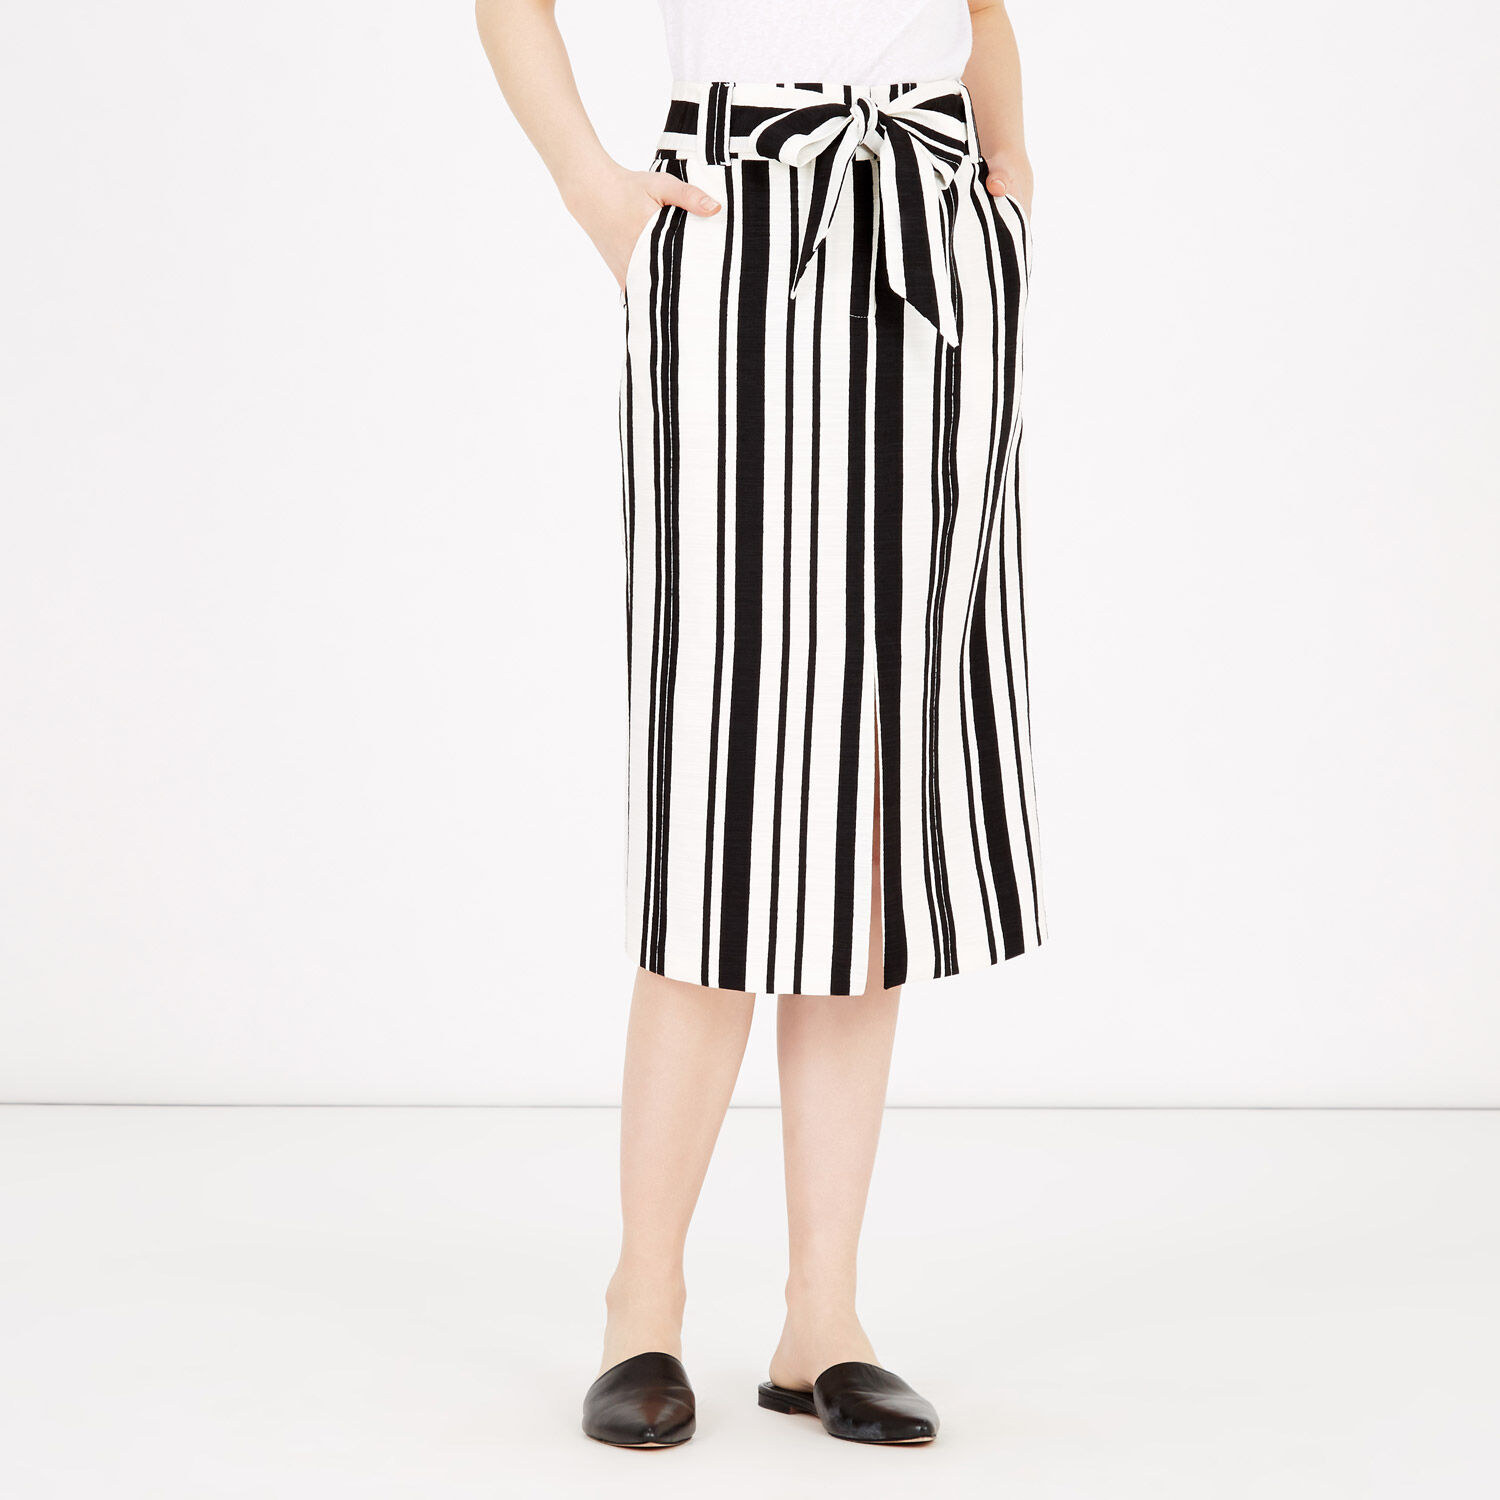 Warehouse, TEXTURED STRIPE PENCIL SKIRT Black Stripe 1